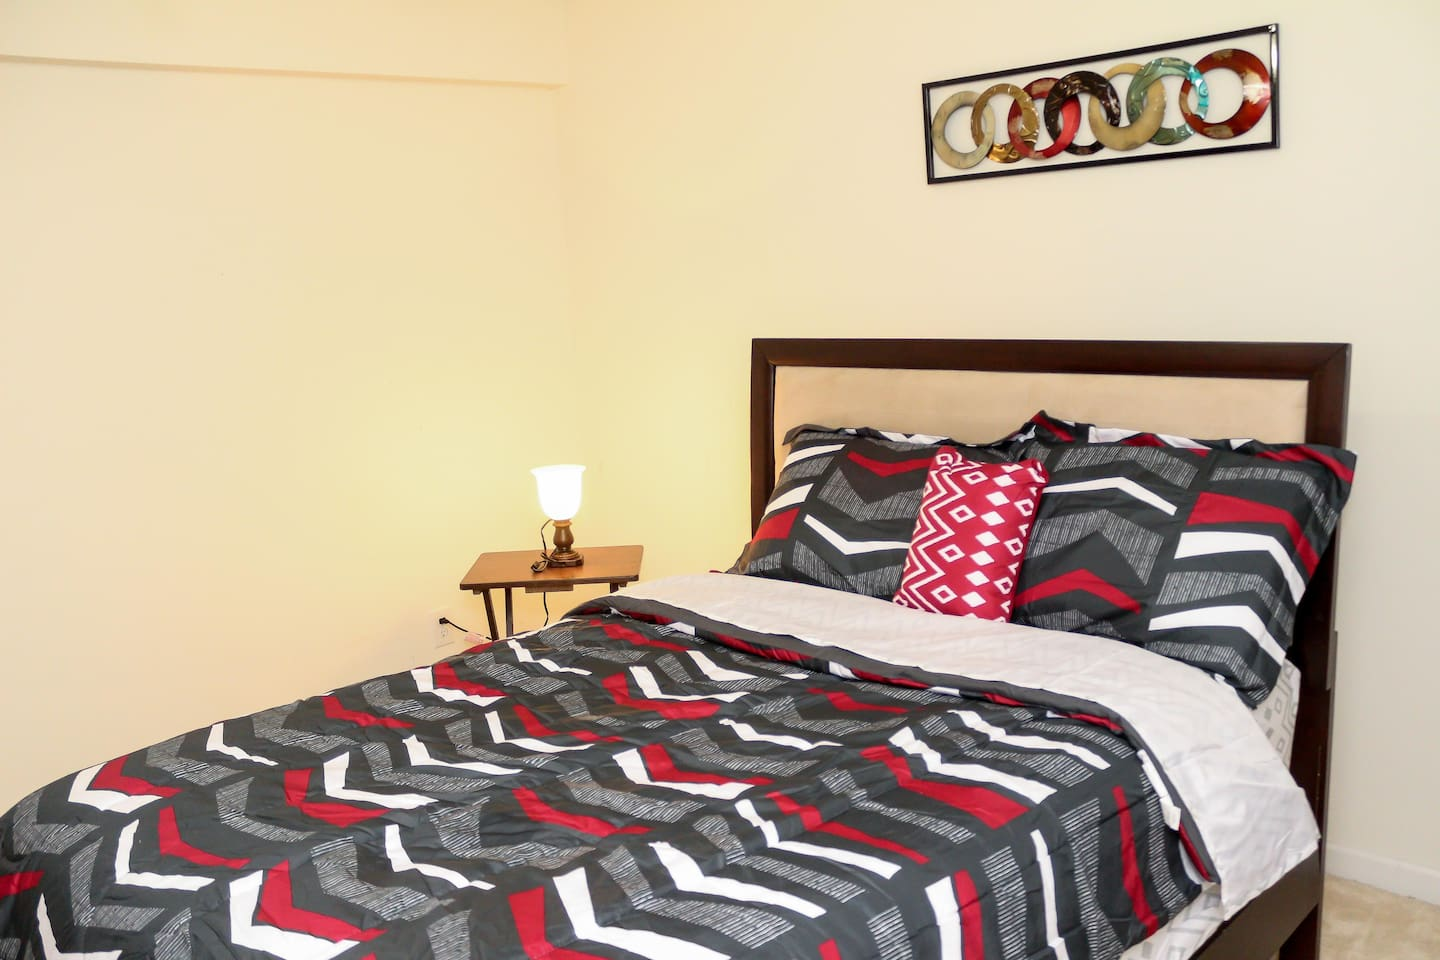 Full size bed with a comforter set.